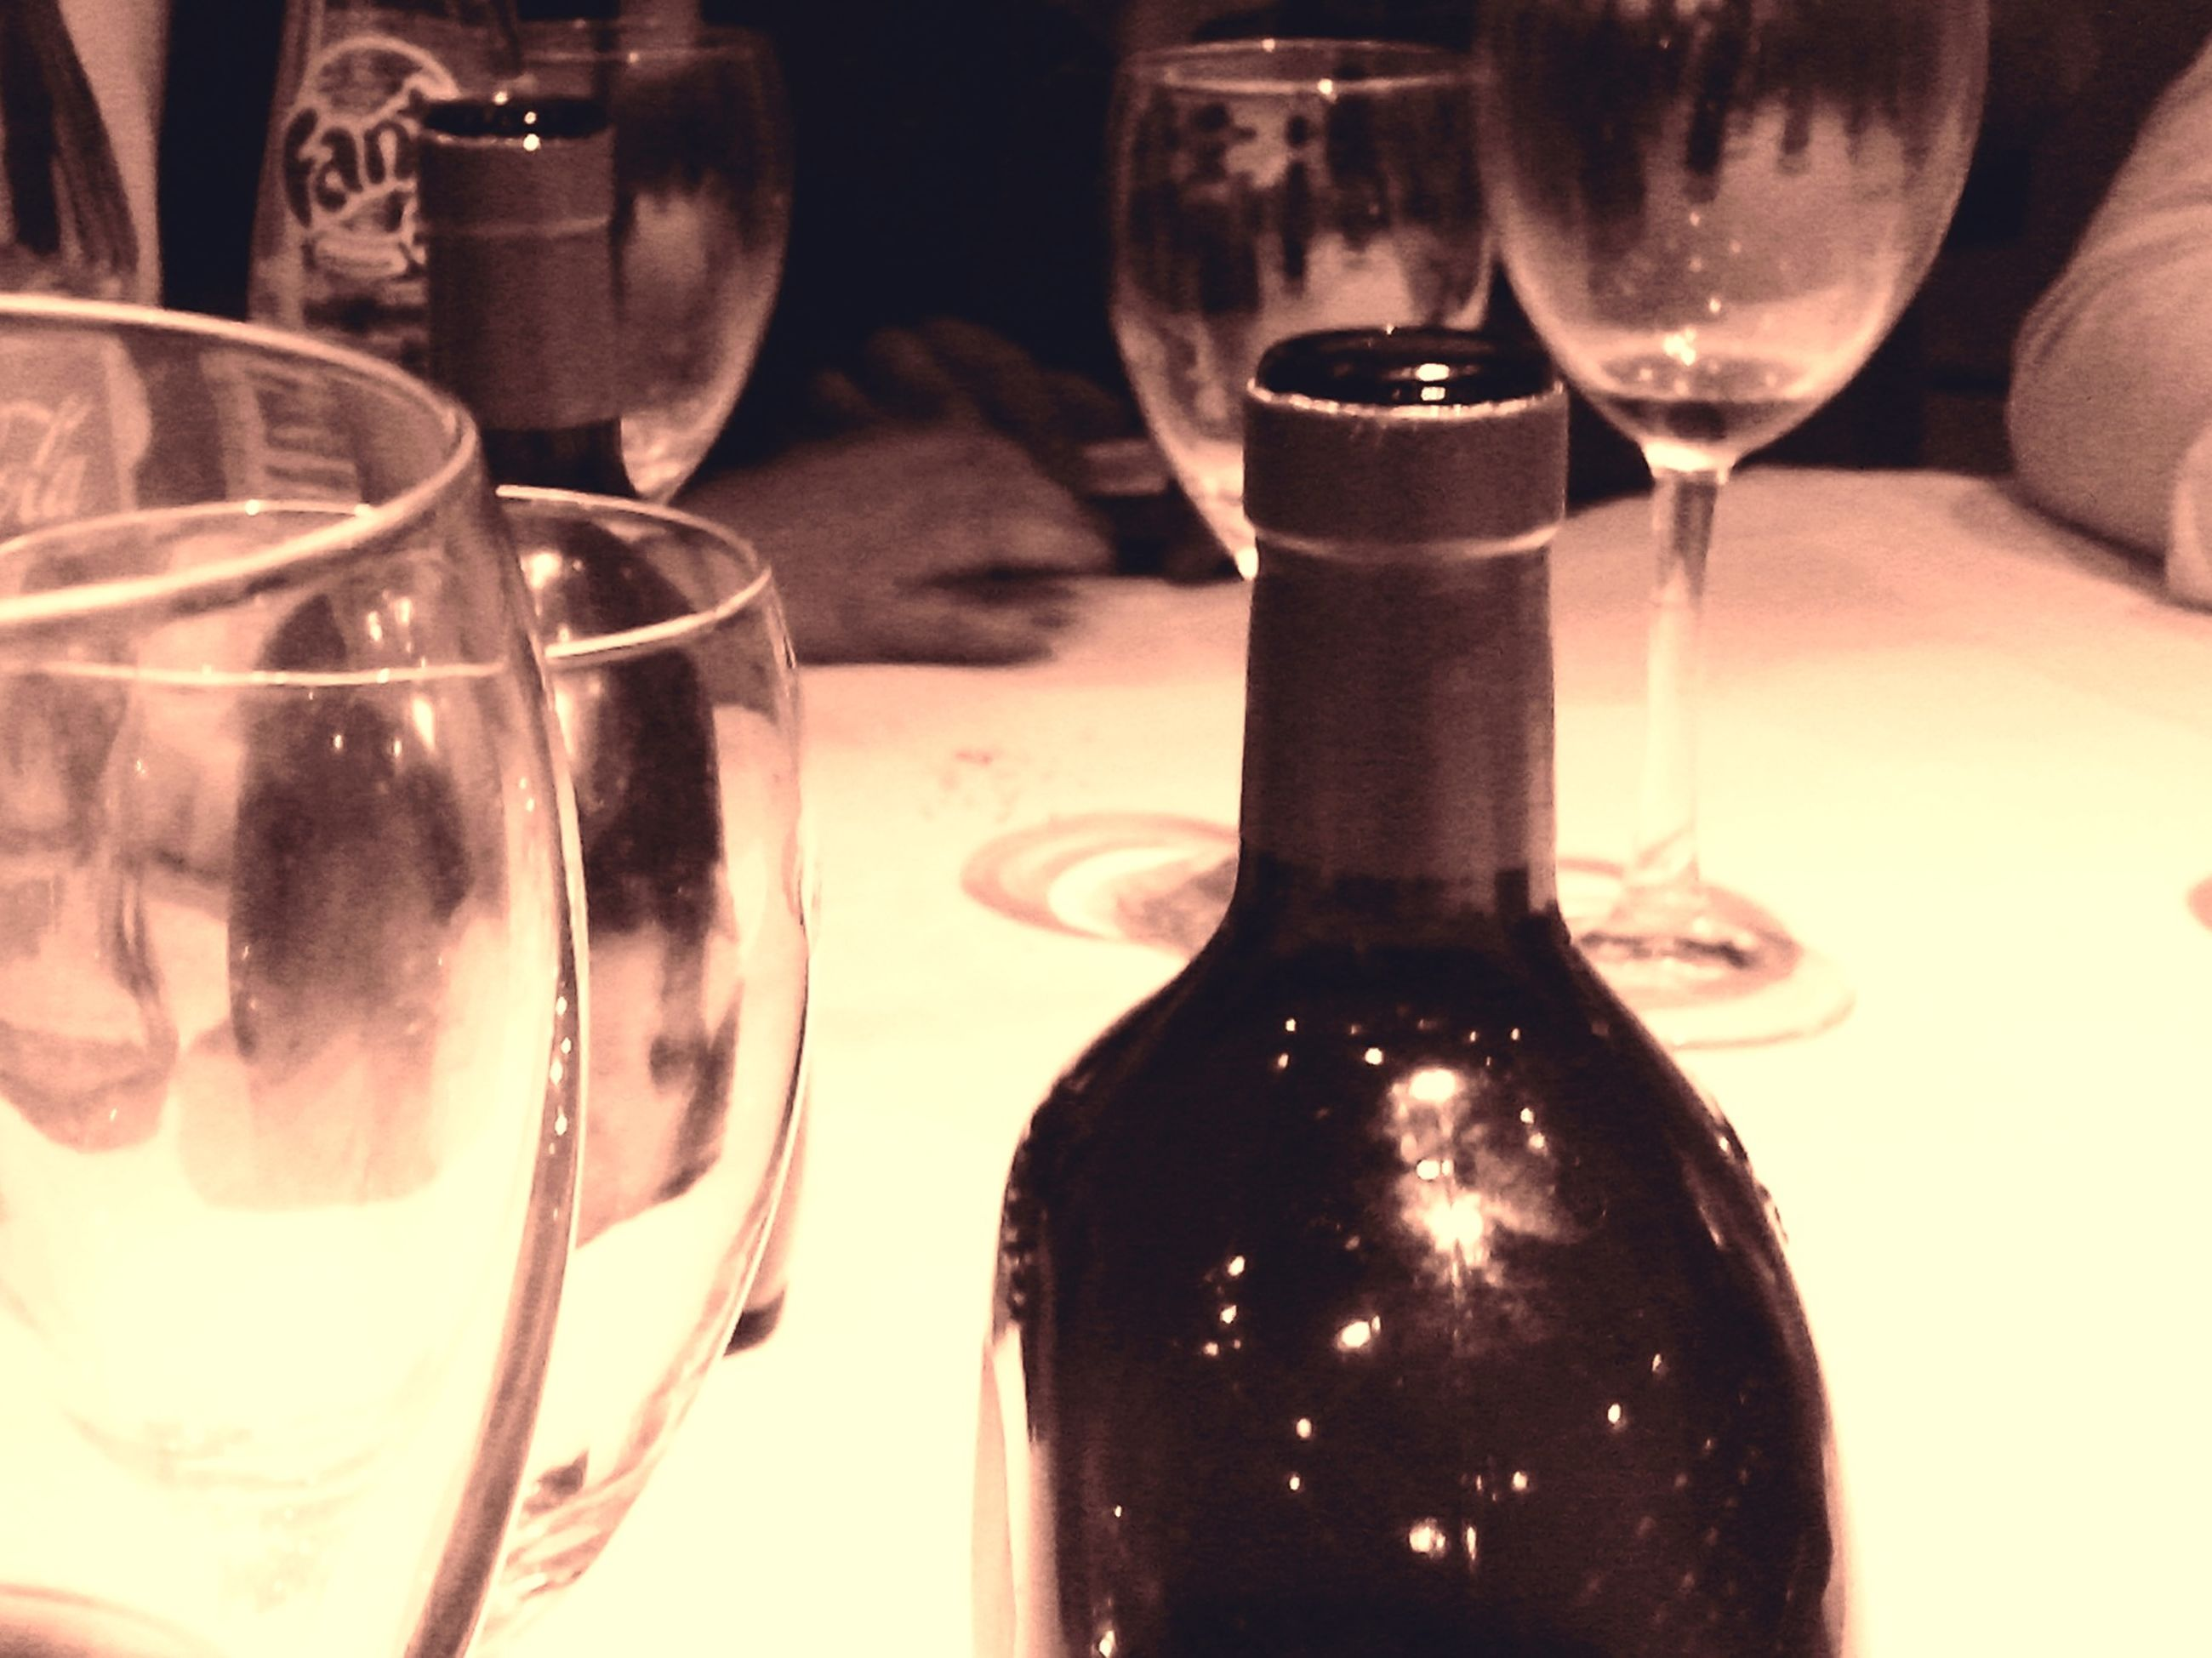 food and drink, drink, drinking glass, indoors, refreshment, alcohol, glass - material, freshness, table, still life, wineglass, close-up, wine, transparent, glass, food, wine glass, bottle, restaurant, alcoholic drink